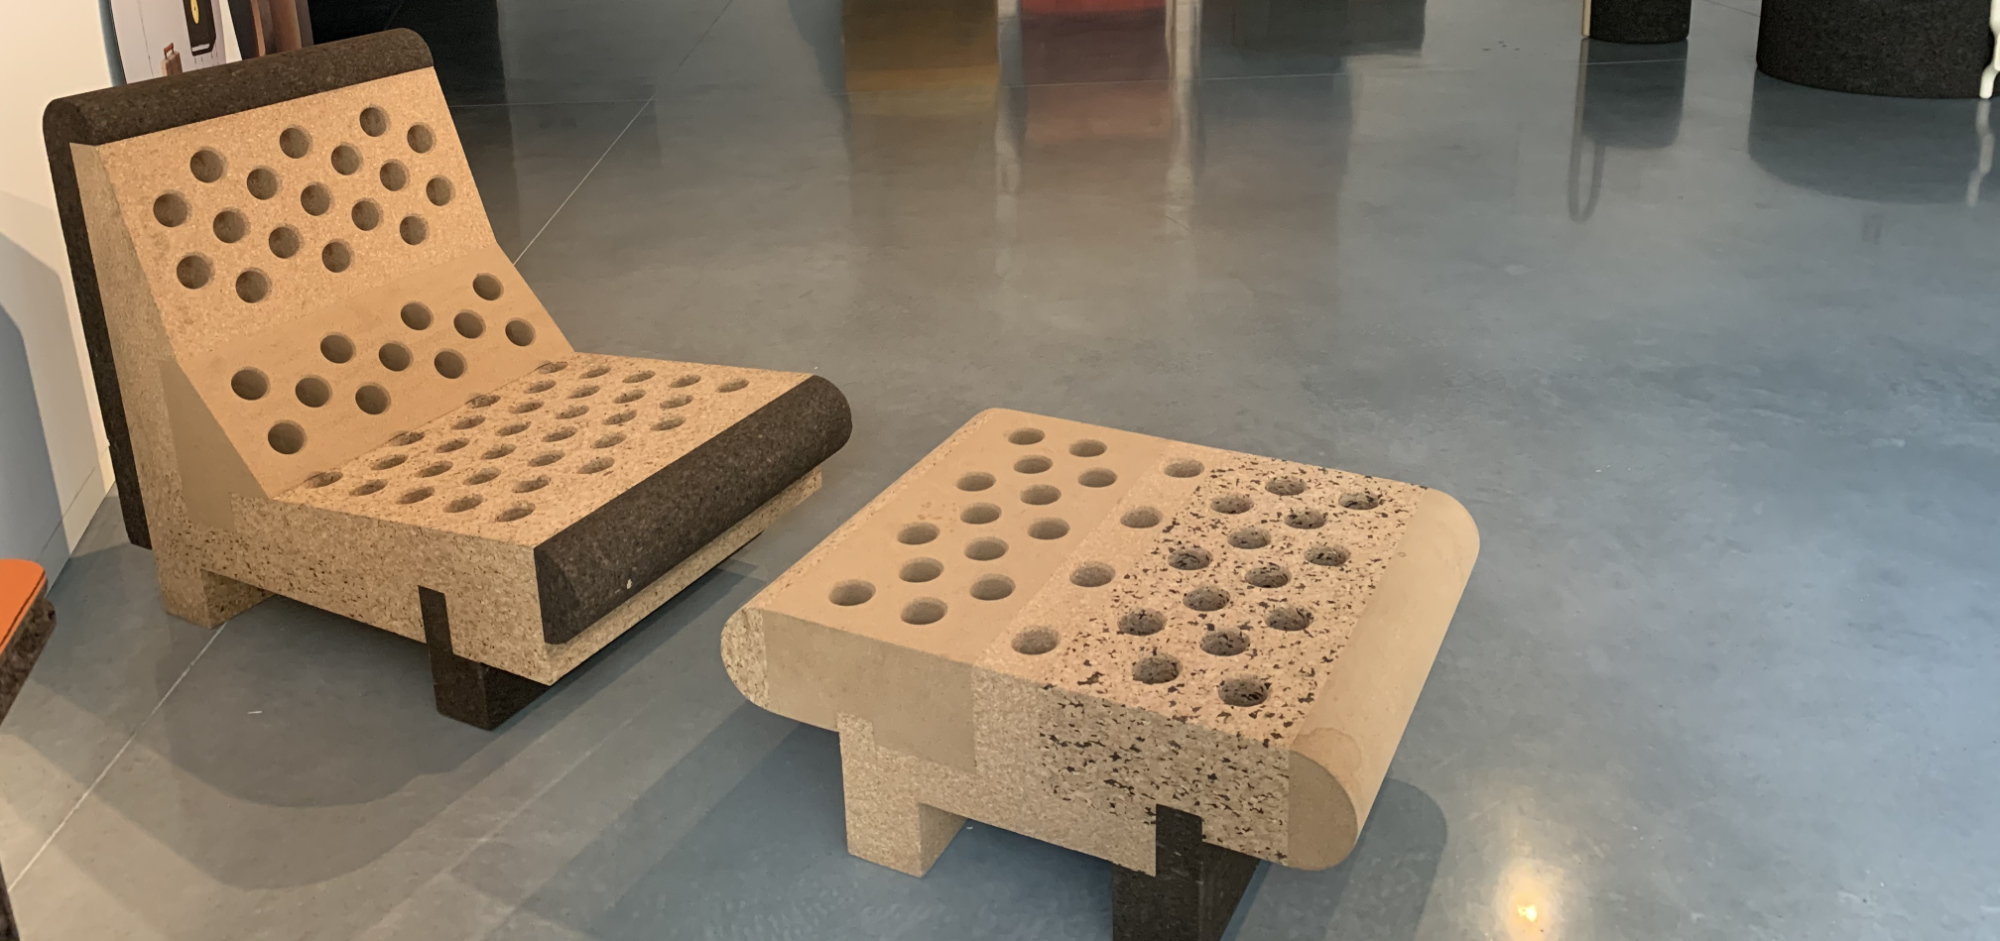 A cork poolside lounger